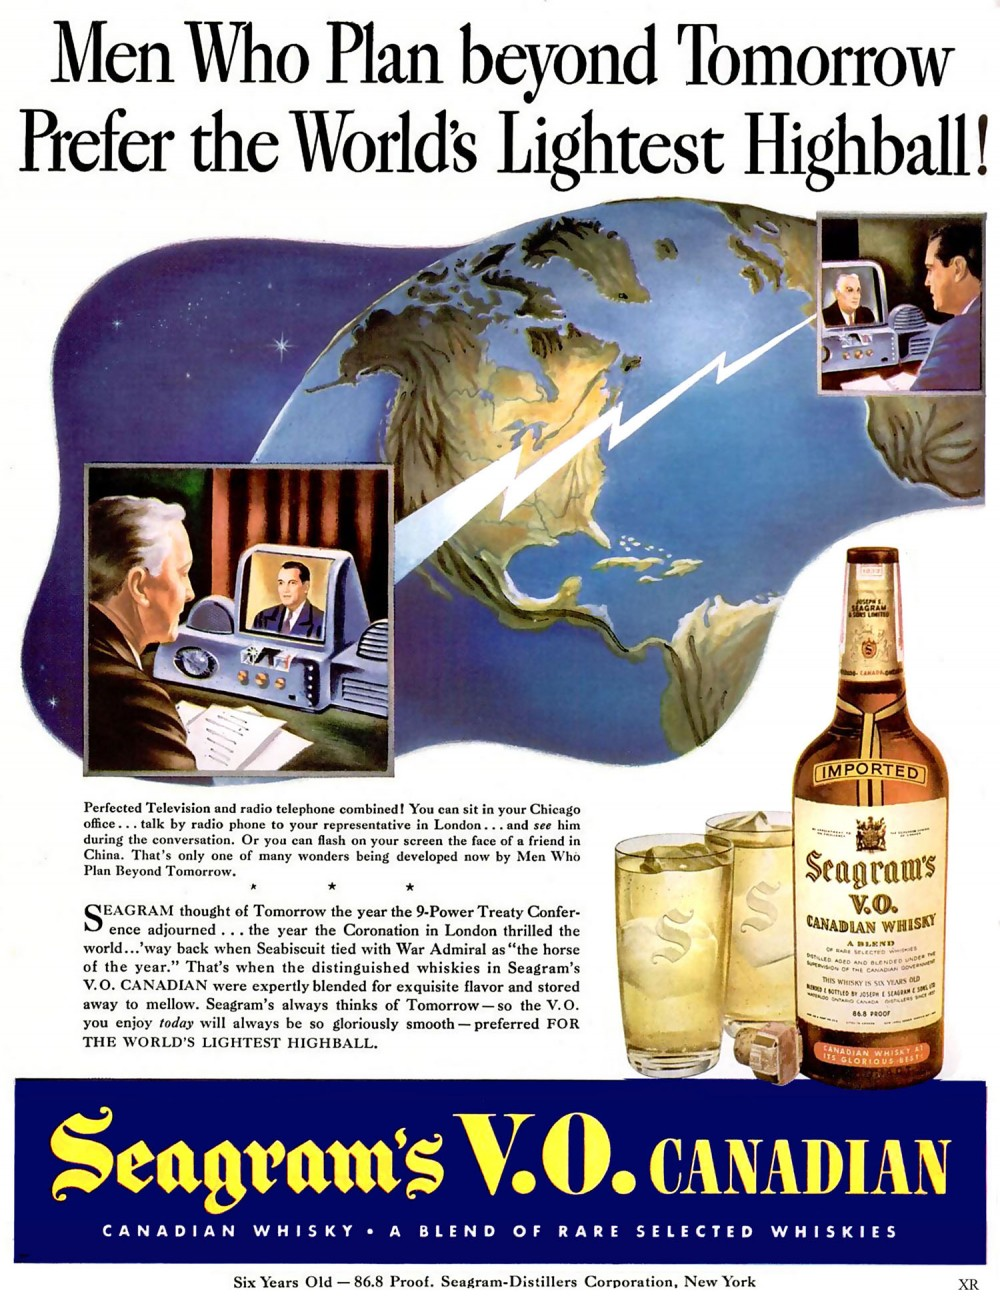 1943 - MWPBT Prefer the World's Lightest Highball 2